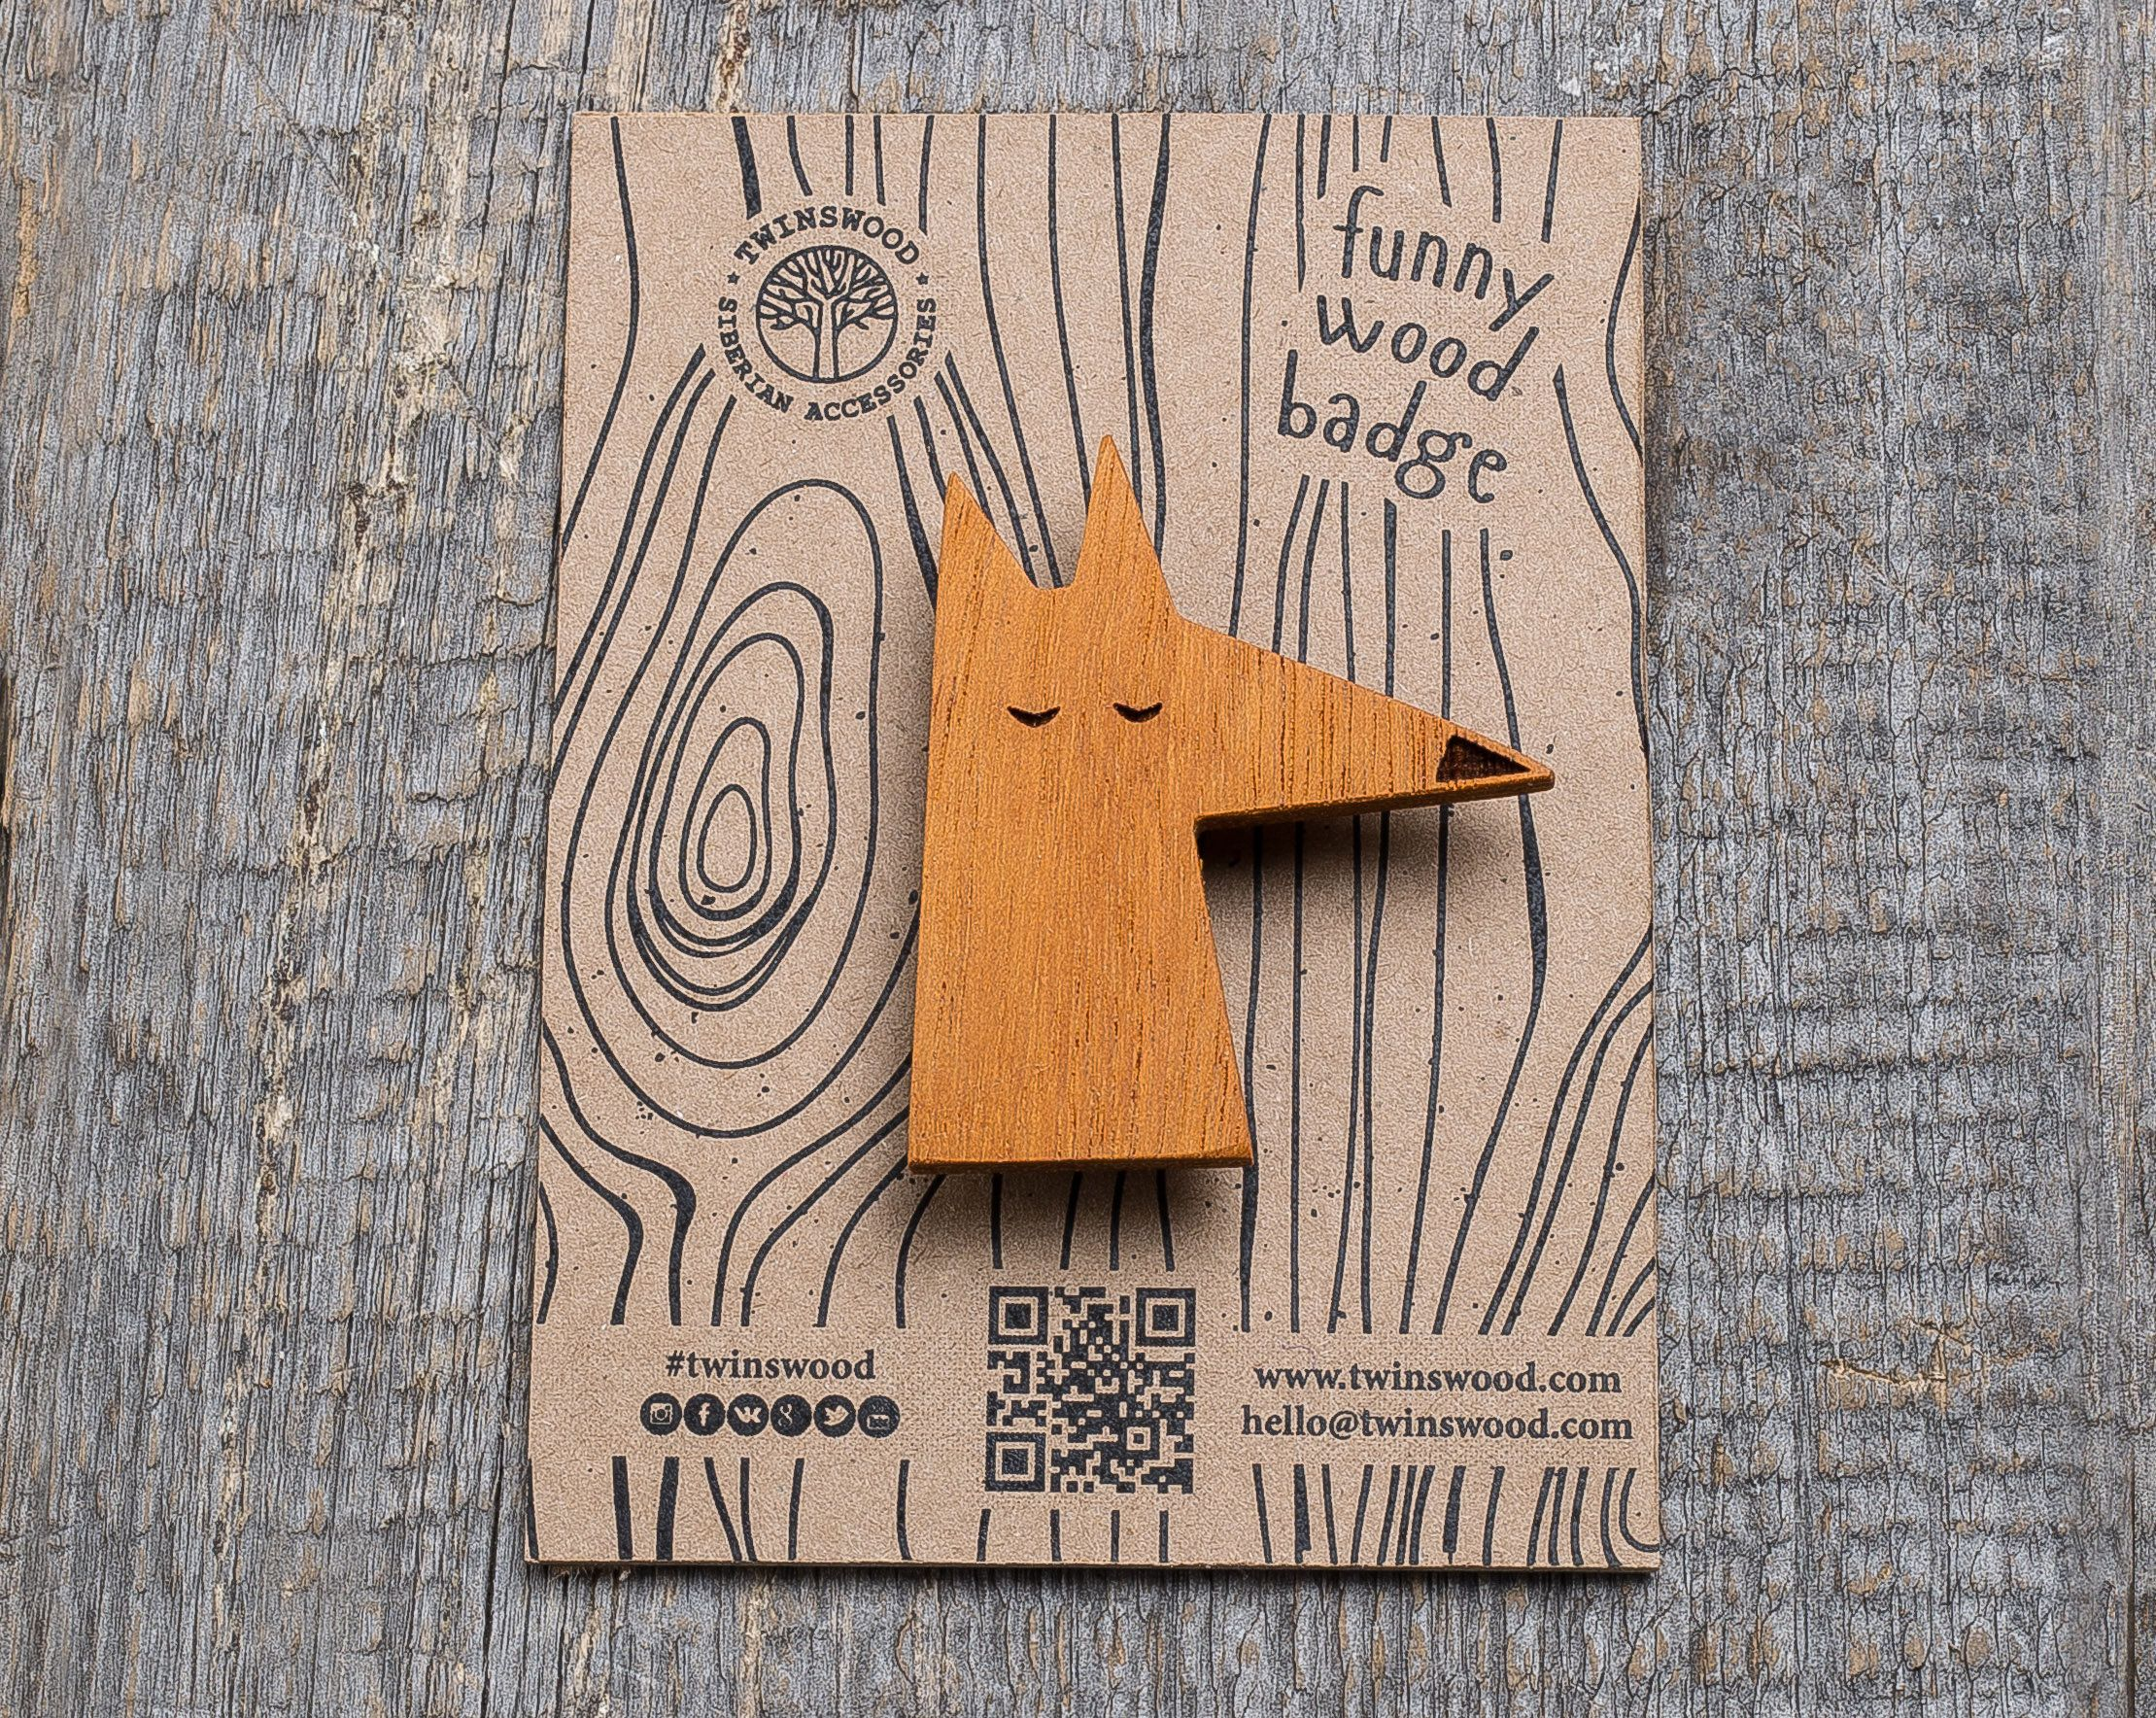 wooden gifts Gift for her Wood badge Wood funny pins Handmade wooden pins Beige Giraffe gift brooch Gift for him Boyfriend small gift.